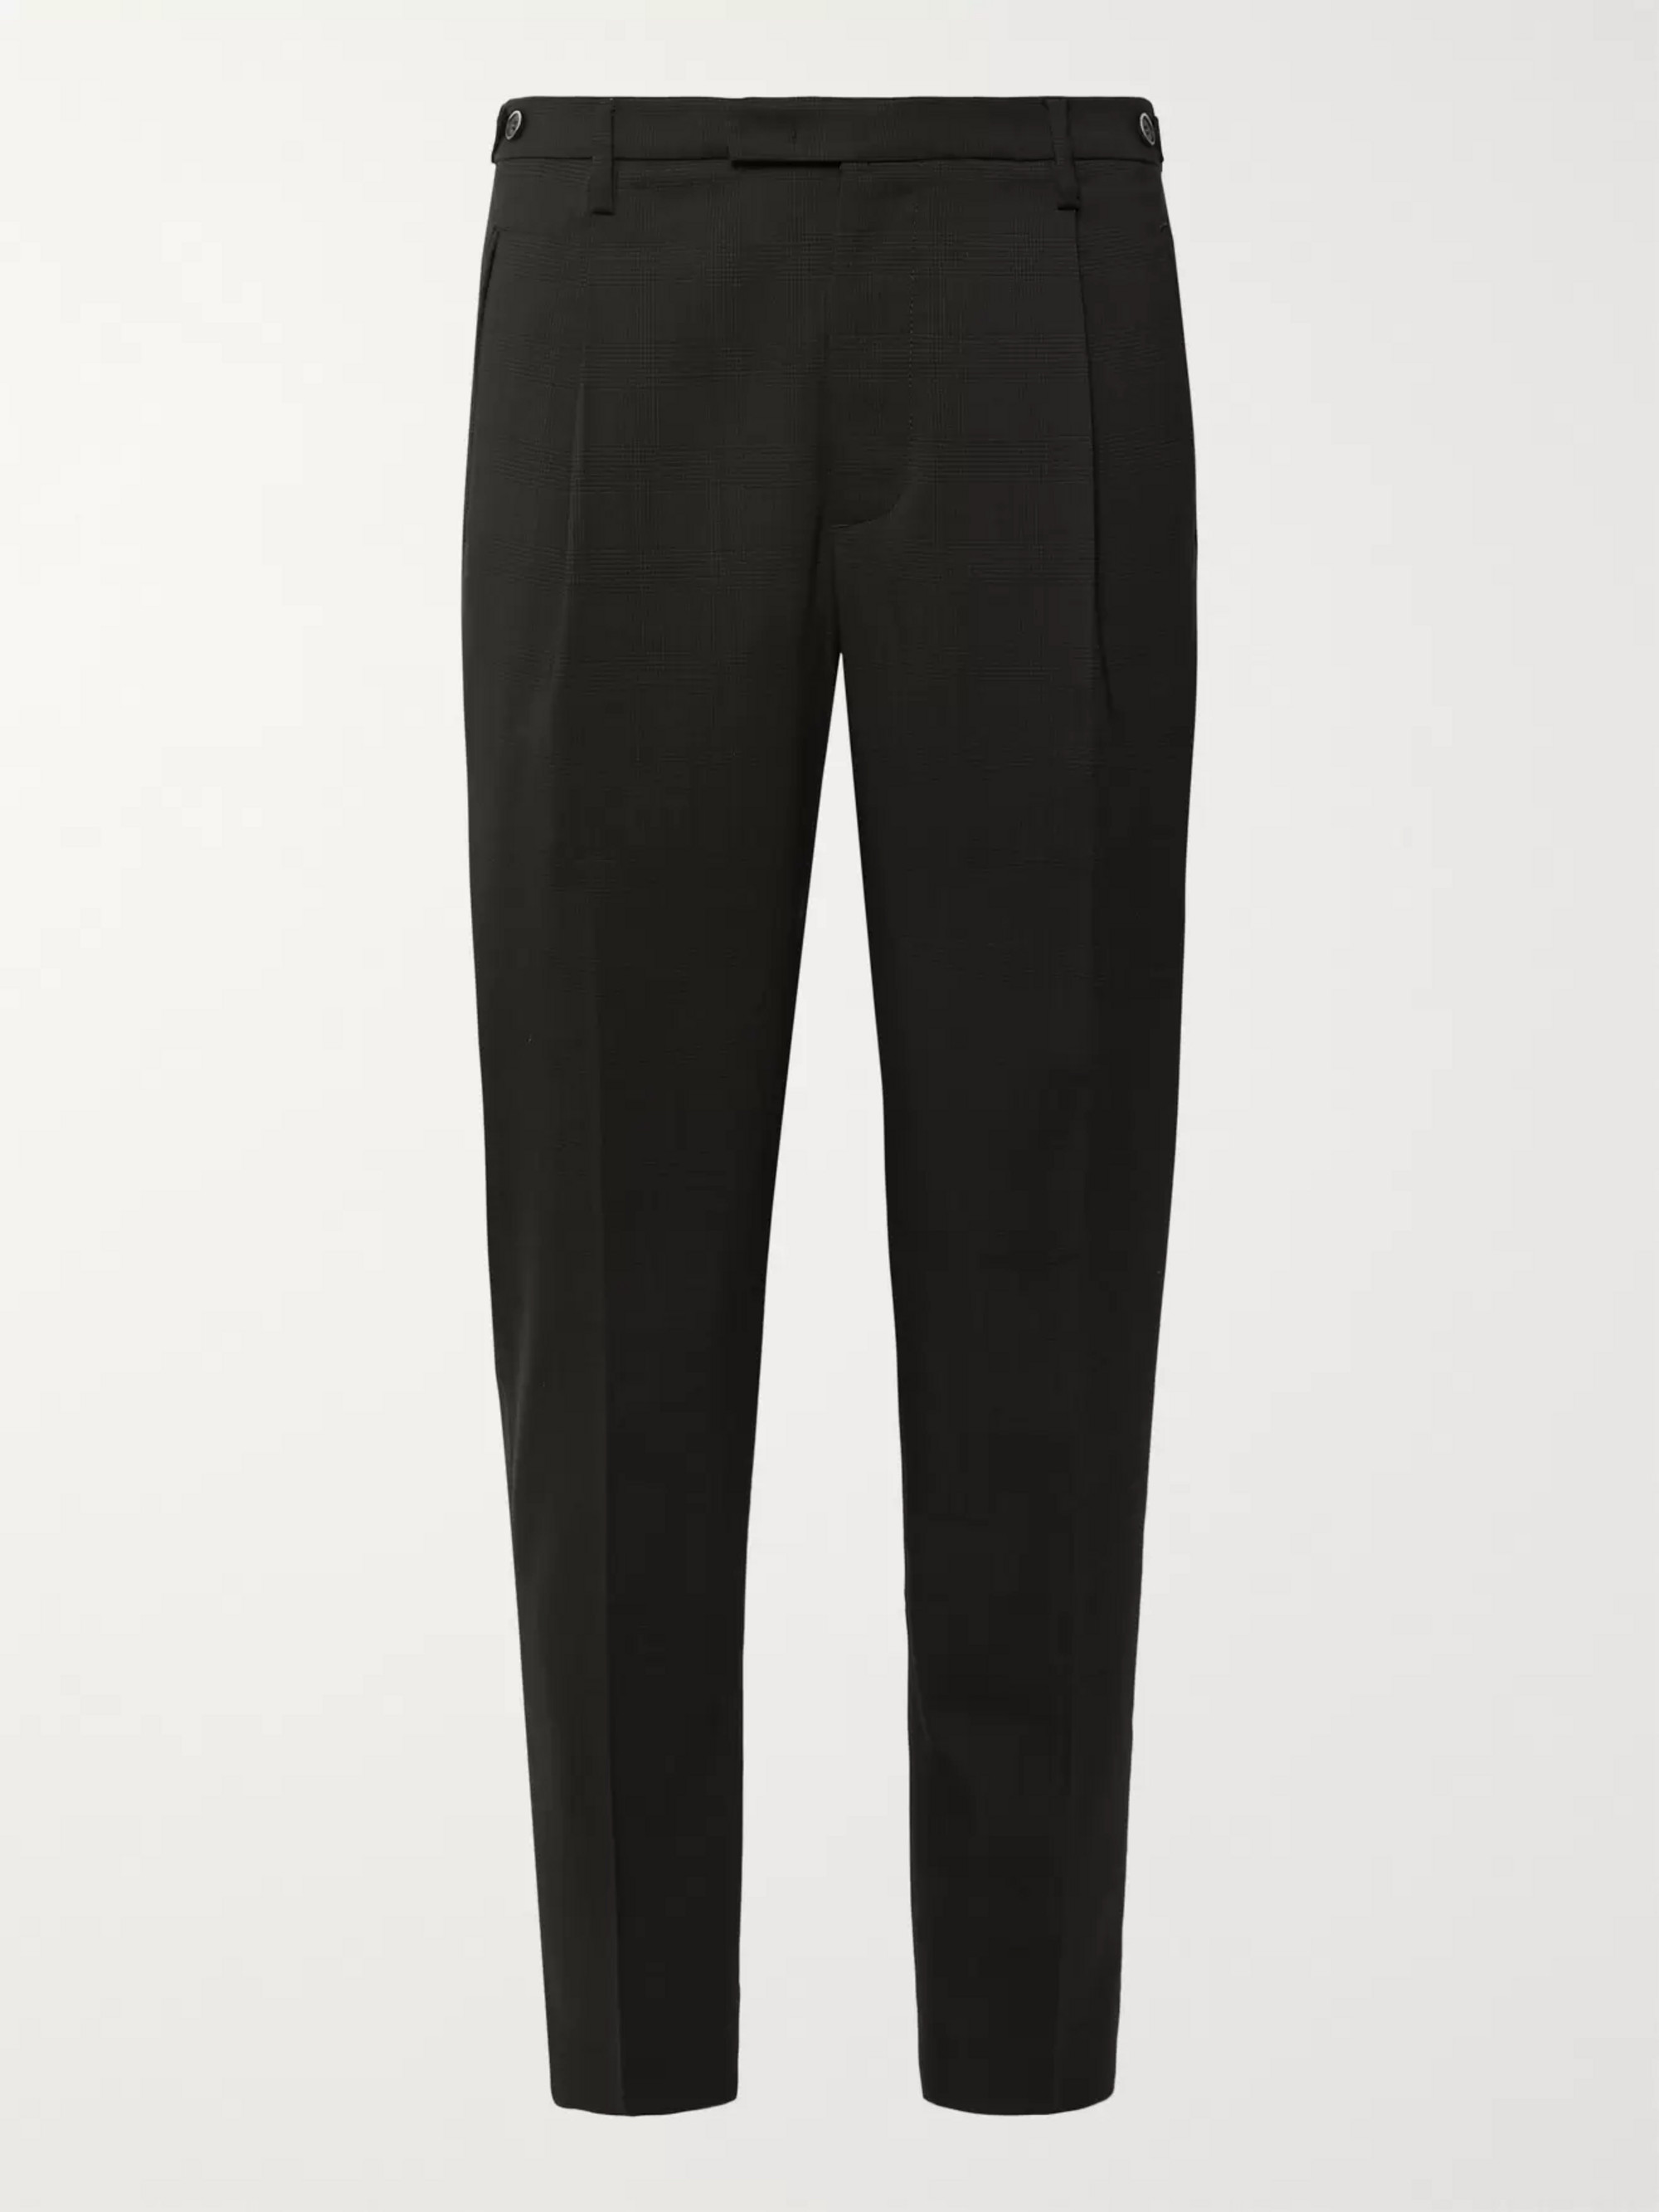 Barena Charcoal Tapered Pleated Prince of Wales Checked Stretch-Virgin Wool Suit Trousers